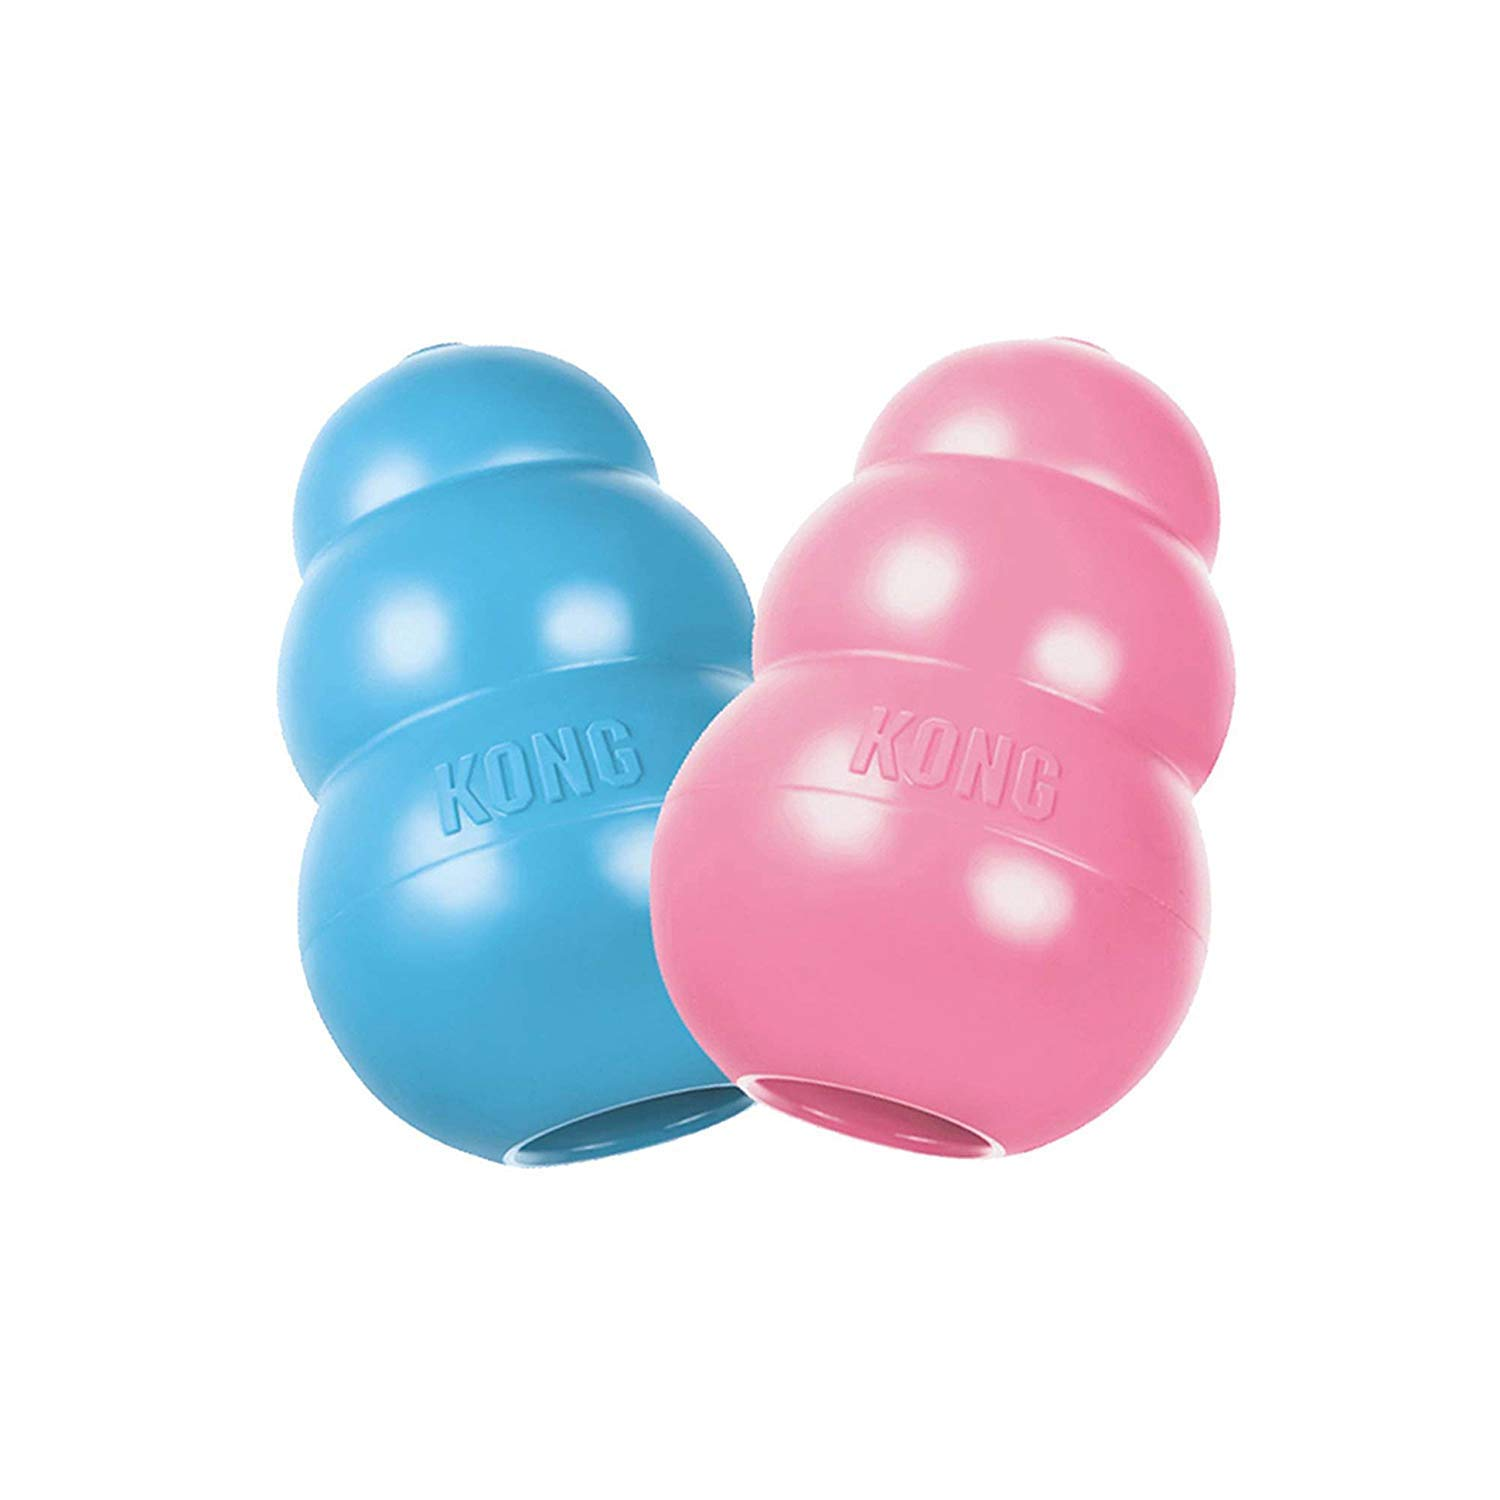 KONG Large Puppy Teething Toy - Colors May Vary (2 Pack) by KONG